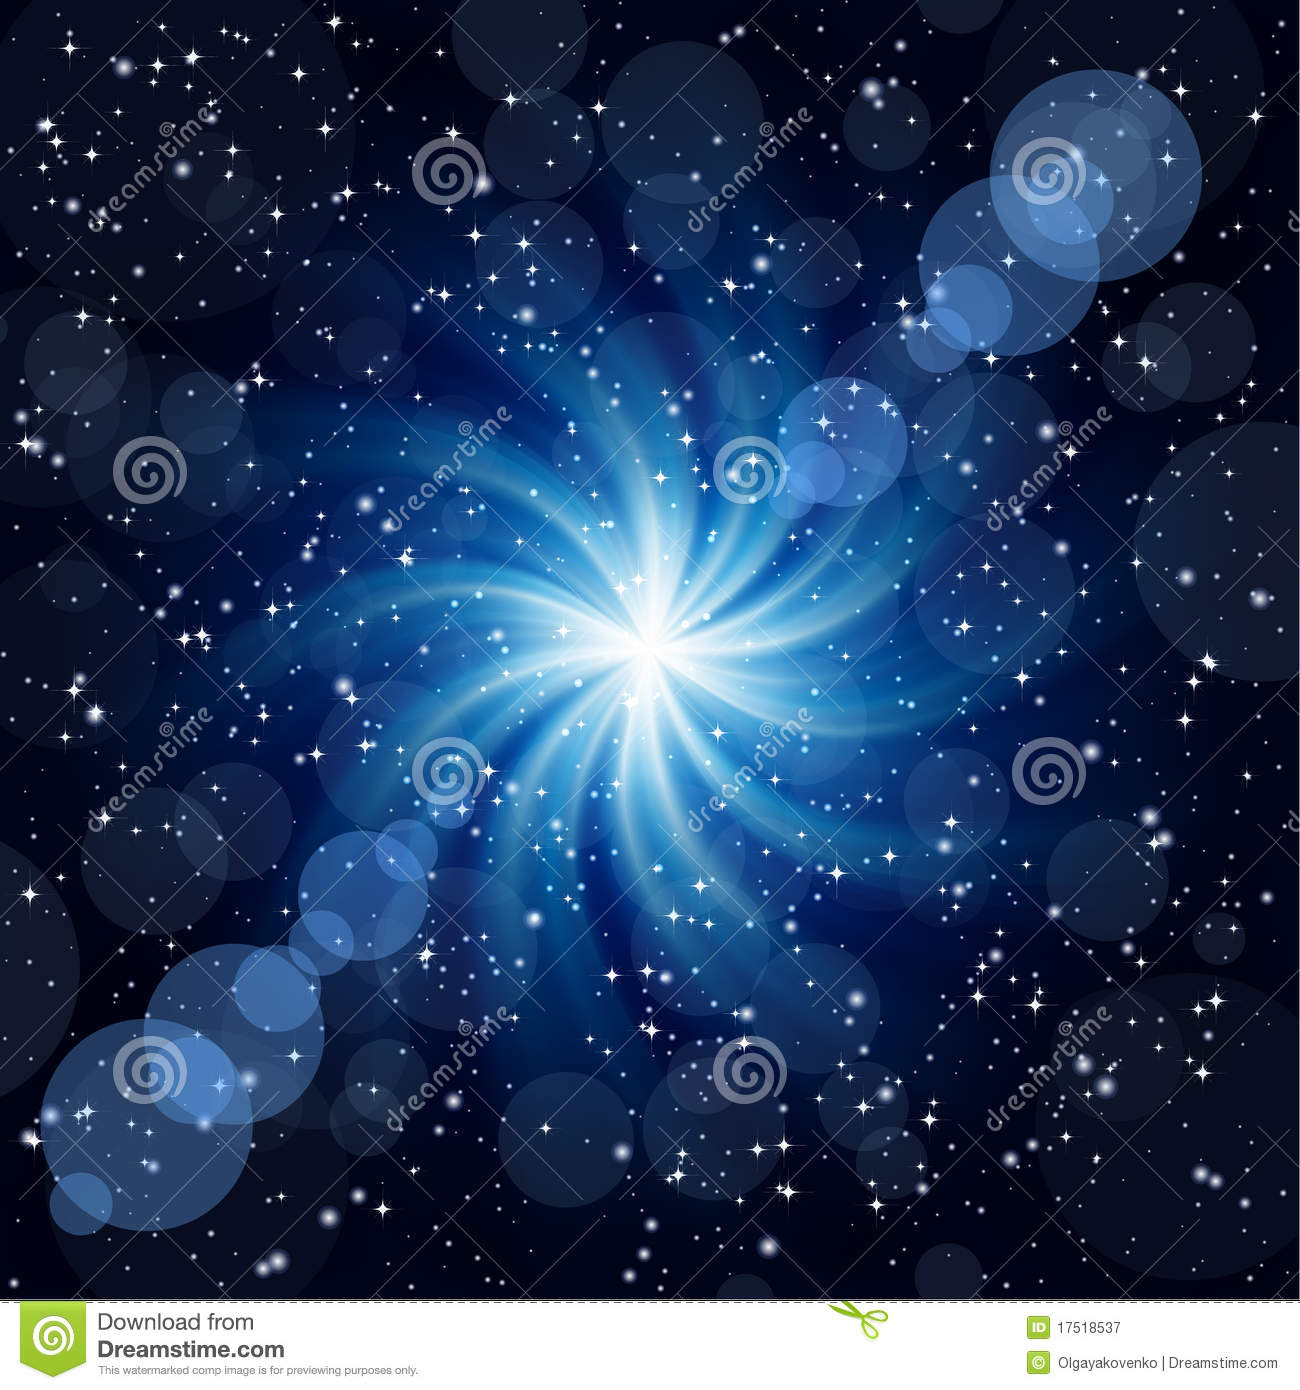 giant blue star background - photo #5